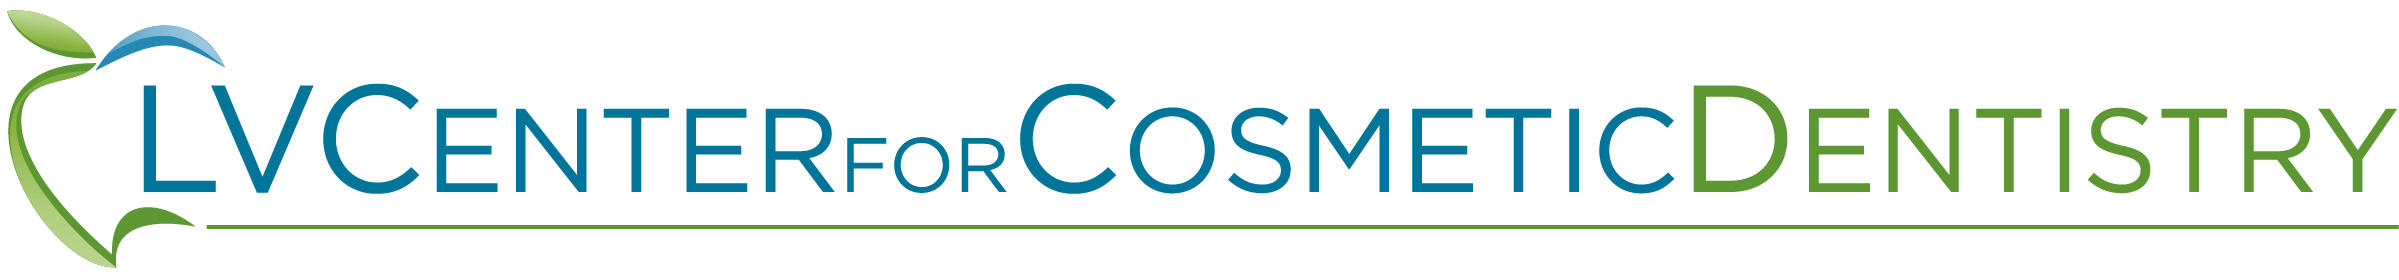 Las Vegas Center for Cosmetic Dentistry